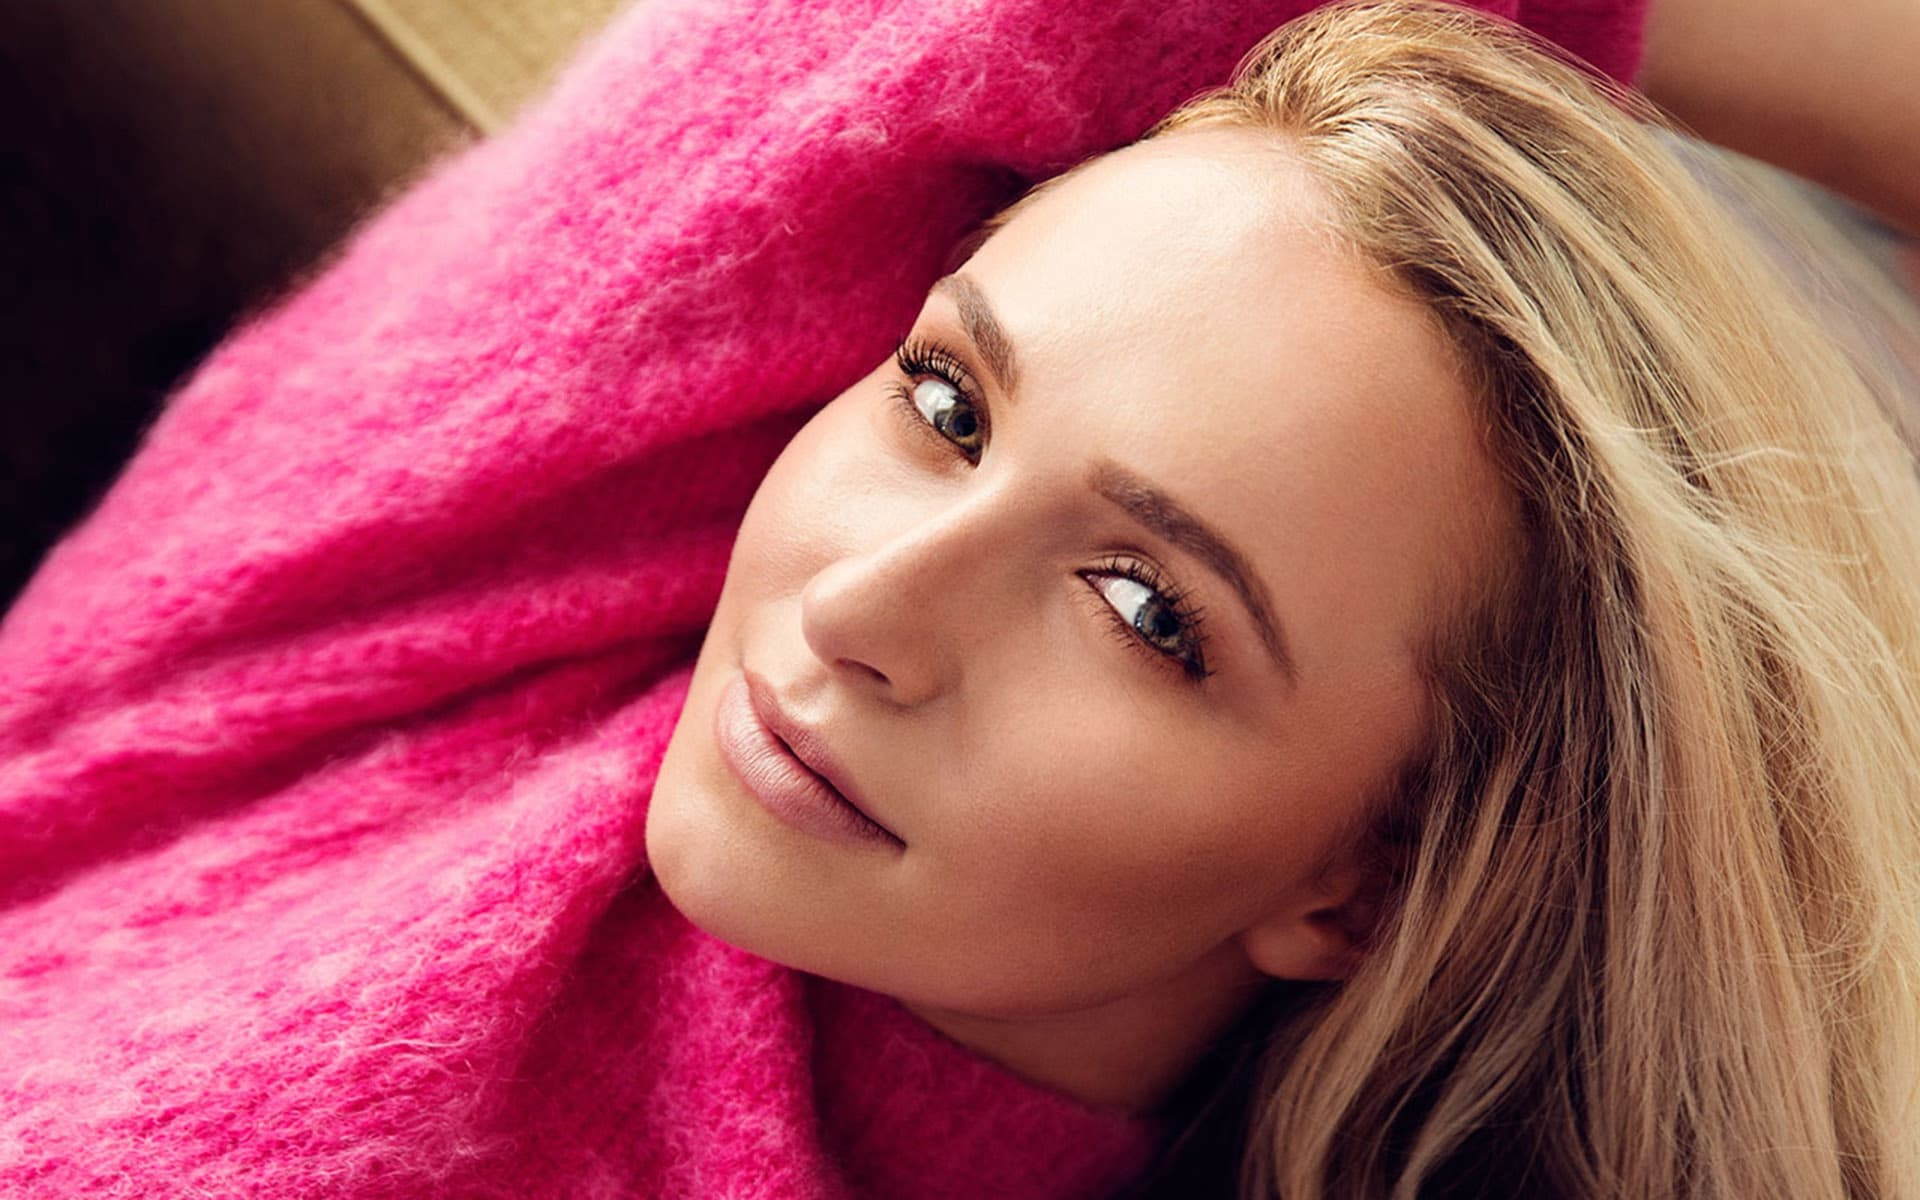 20 Hayden Panettiere Wallpapers Hd Hairstyles High Quality